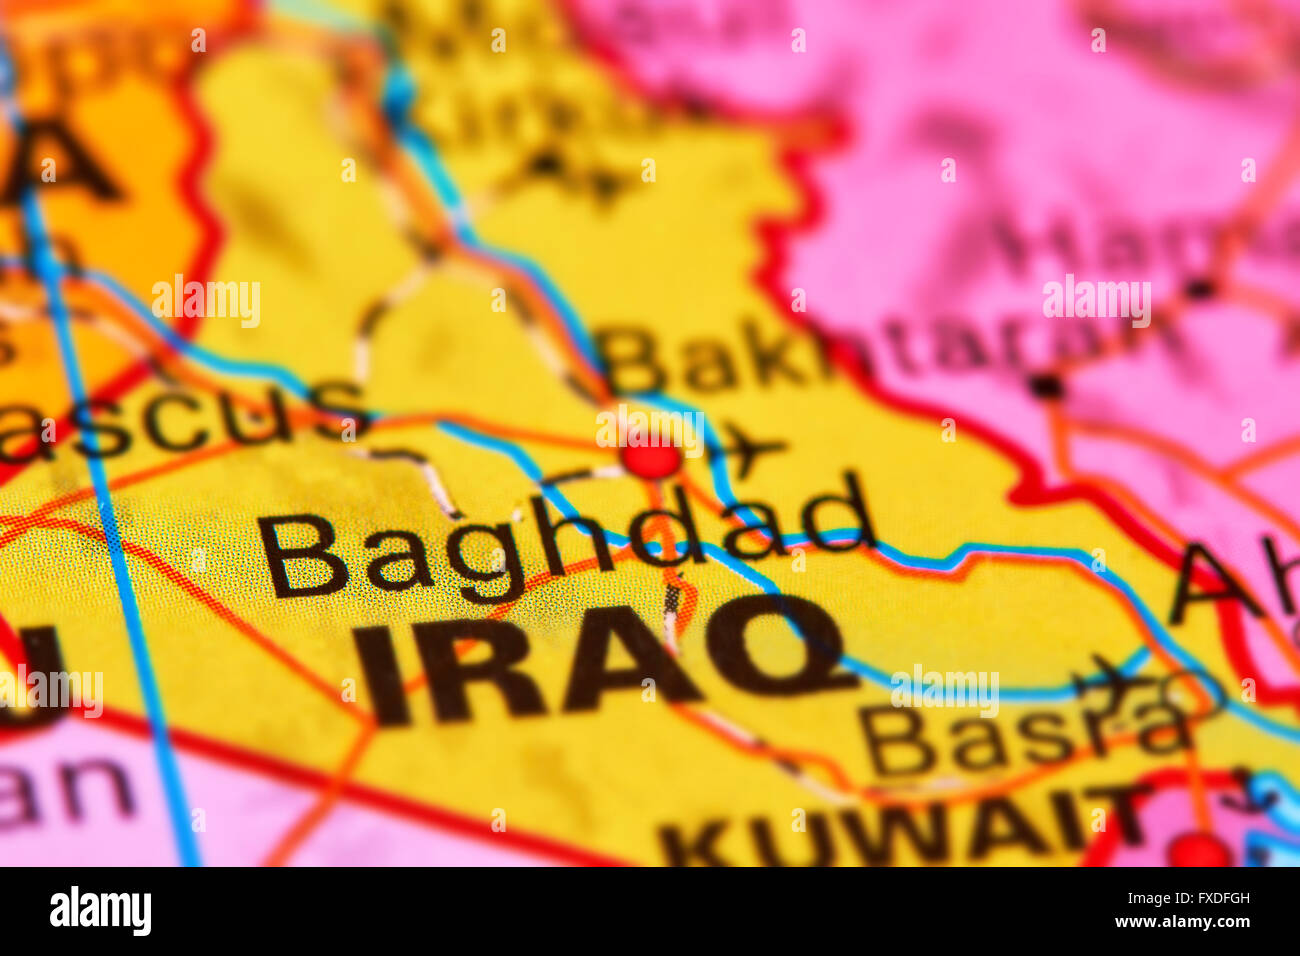 Worksheet. Baghdad Capital City of Iraq in the Middle East on the World Map